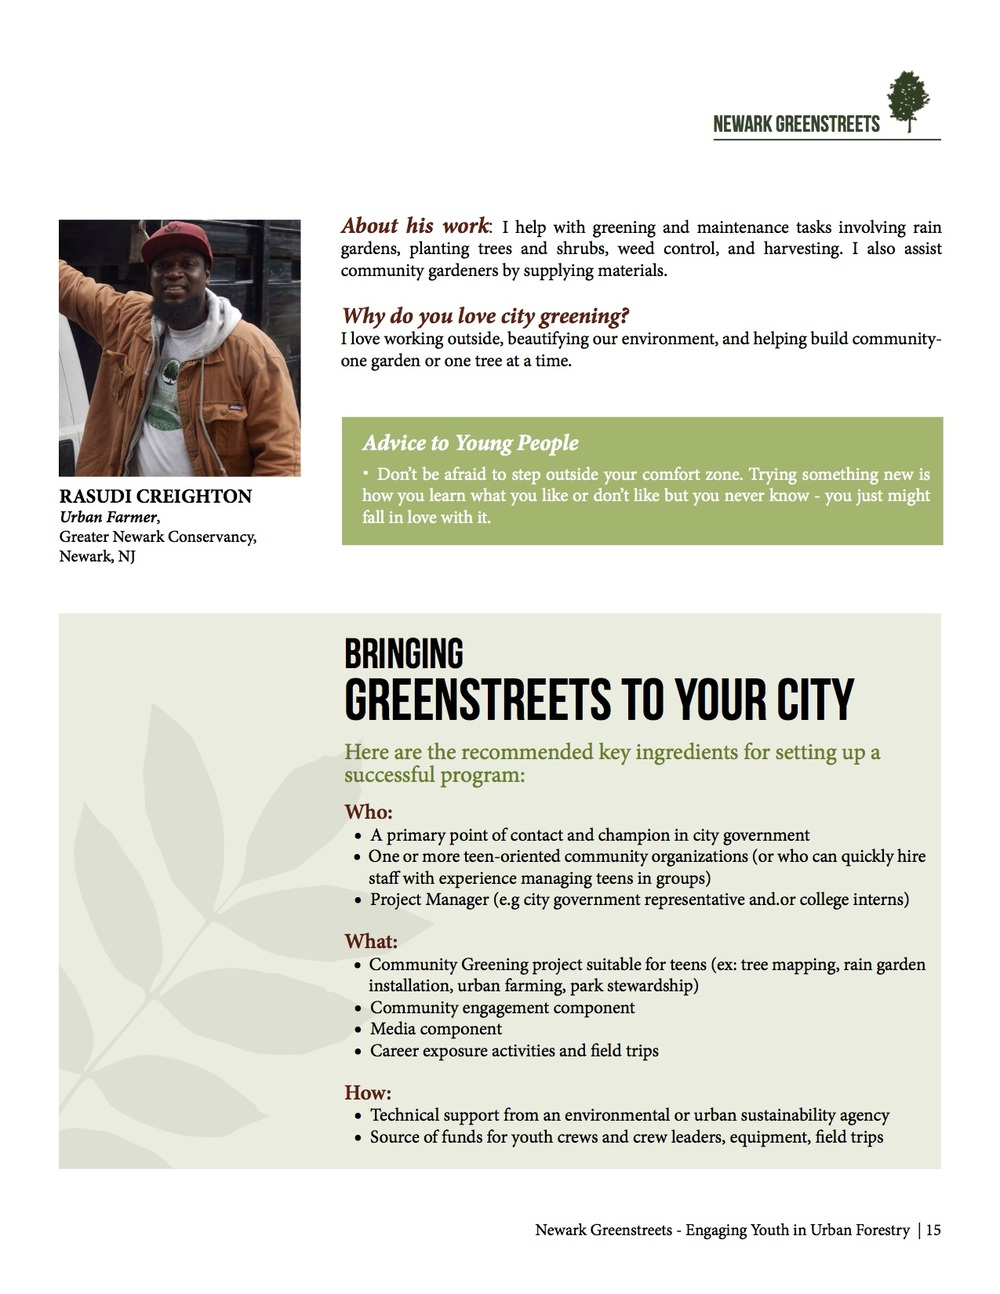 Grow Your Own_Newark Greenstreets-15.jpg